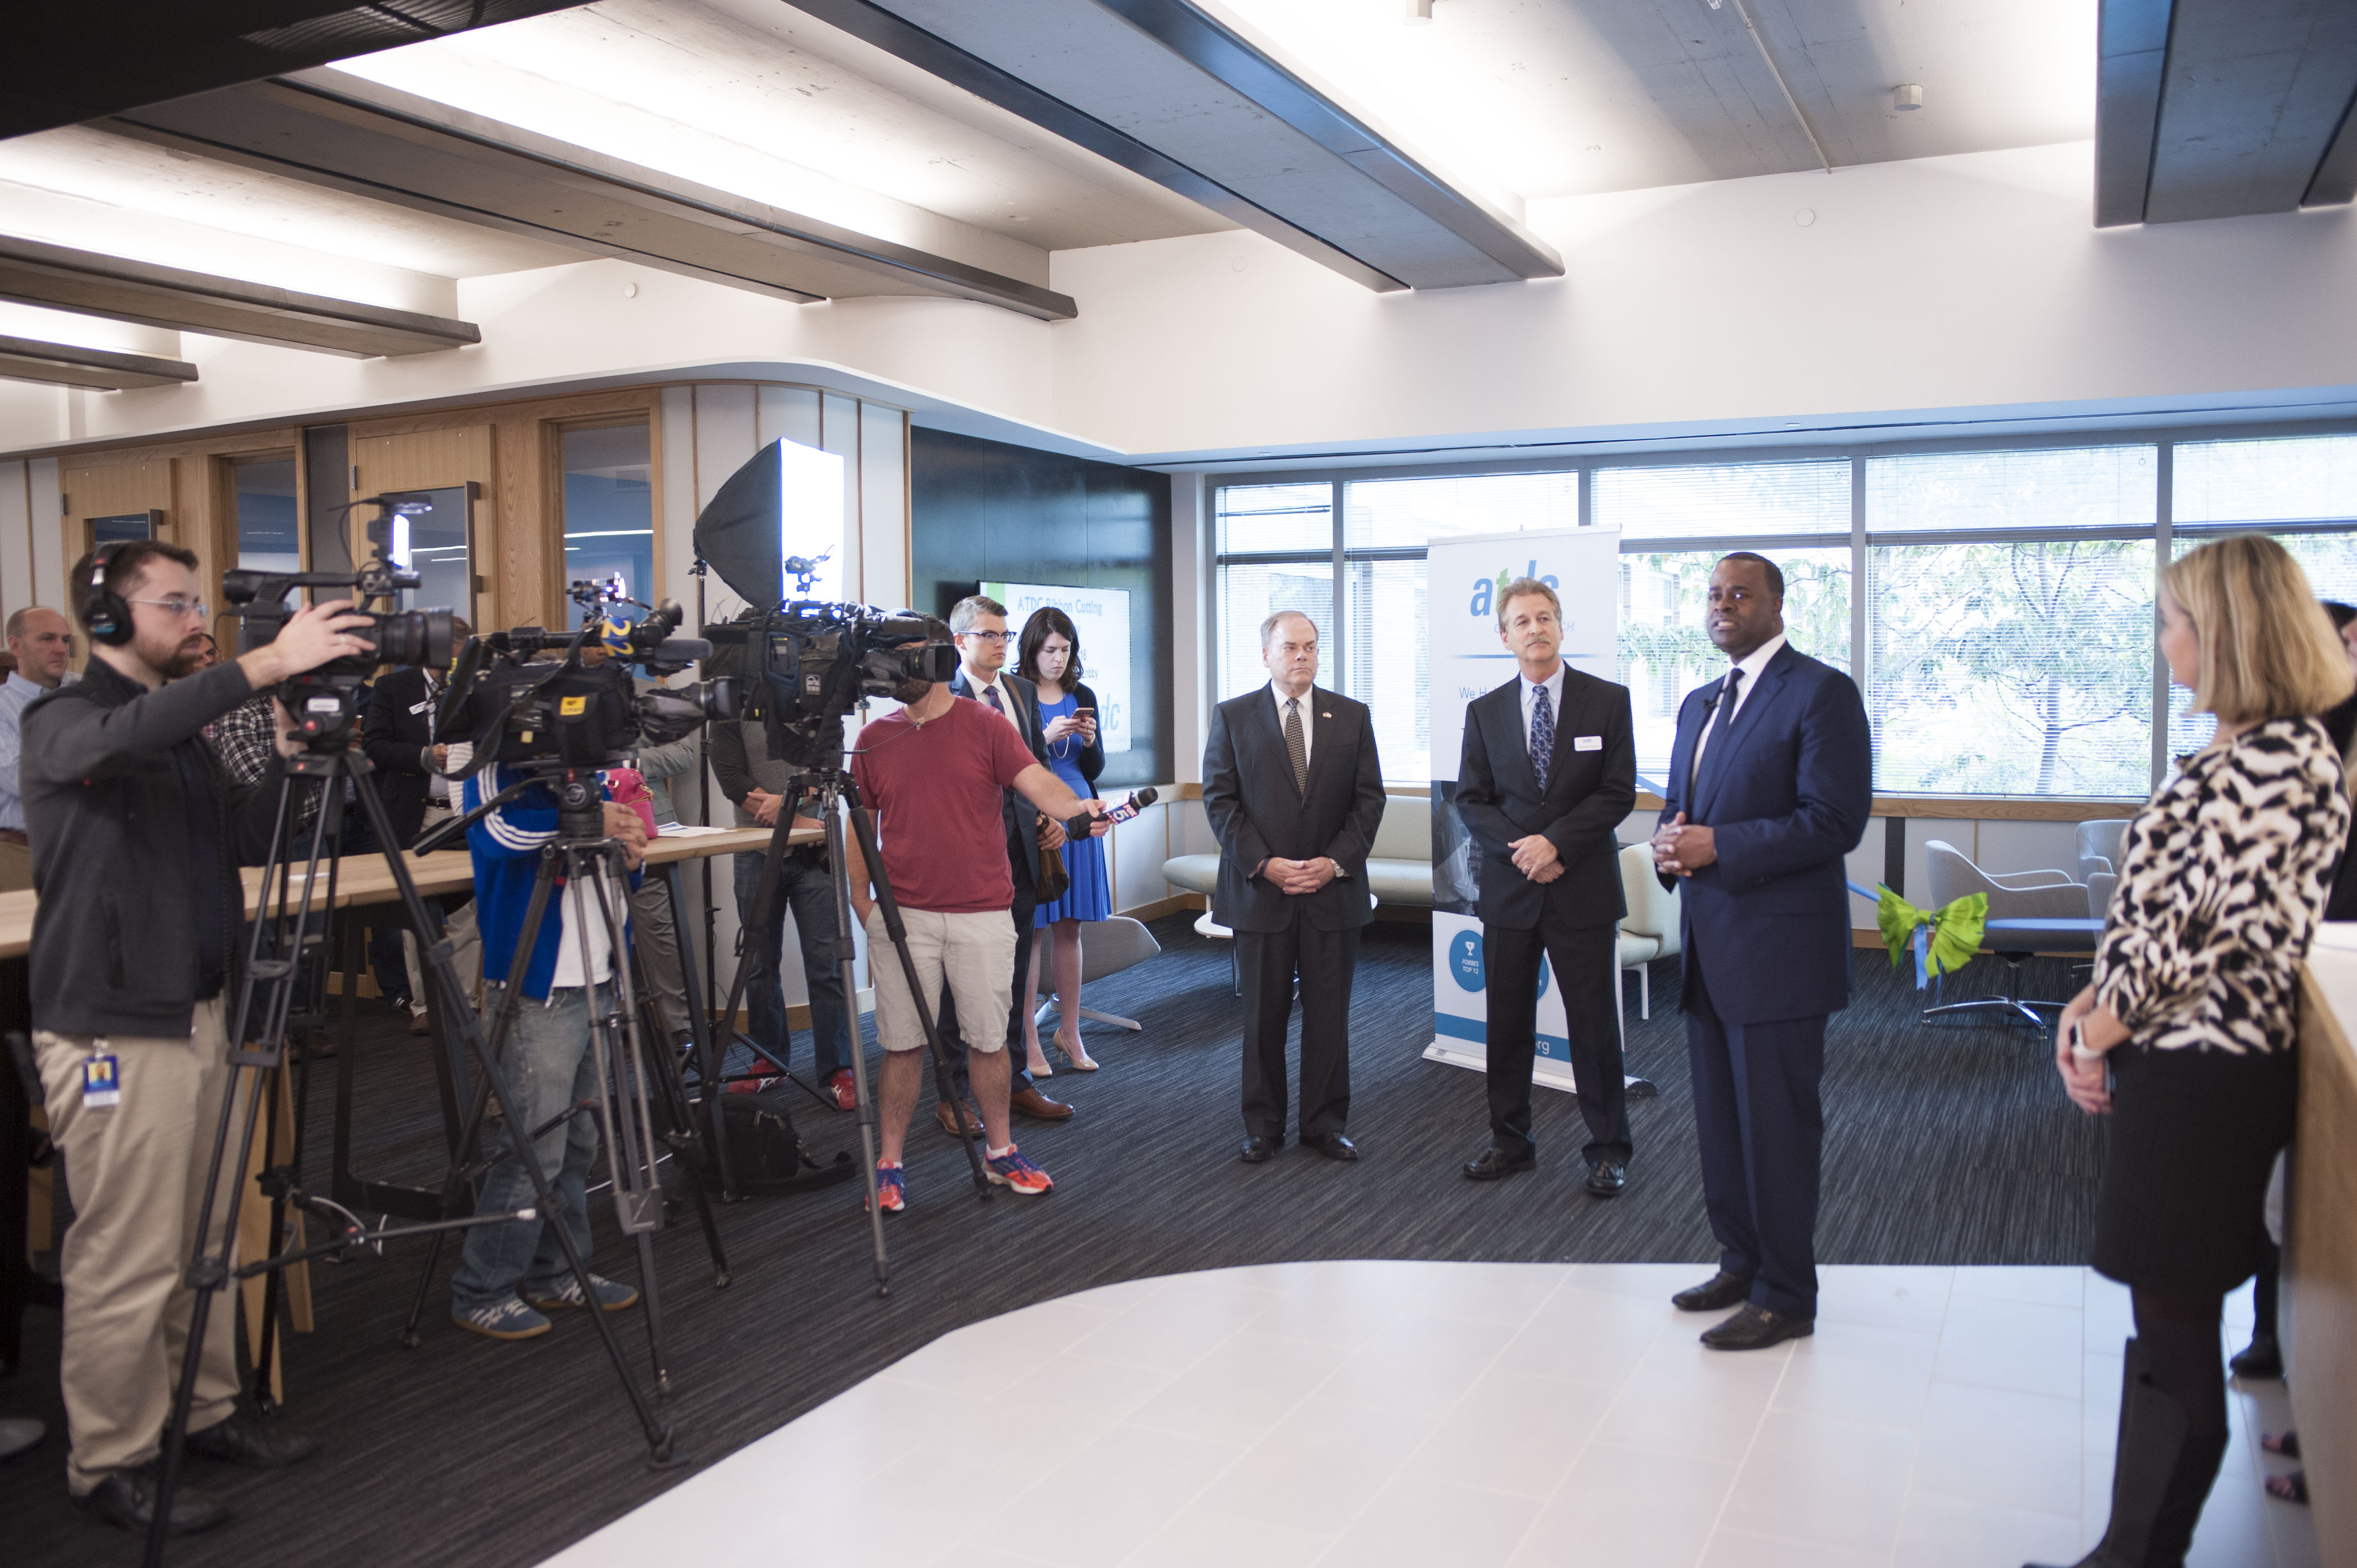 Atlanta Mayor Kasim Reed addresses media and the ATDC community on the incubator's importance in attracting and retaining technology talent in Atlanta and the state.